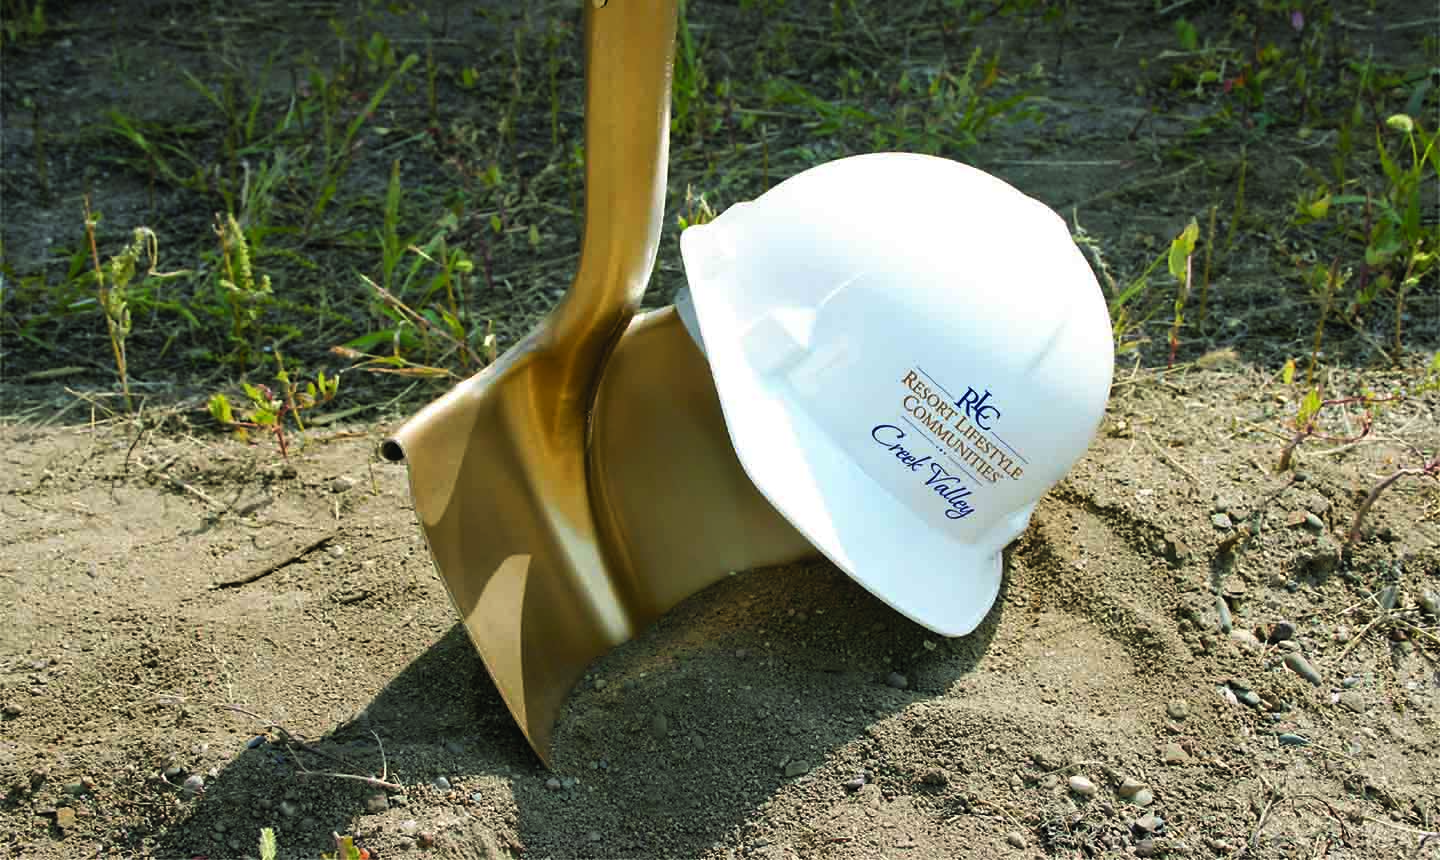 Golden shovel and Resort Lifestyle Communities hard hat to represent the construction being done at Creek Valley